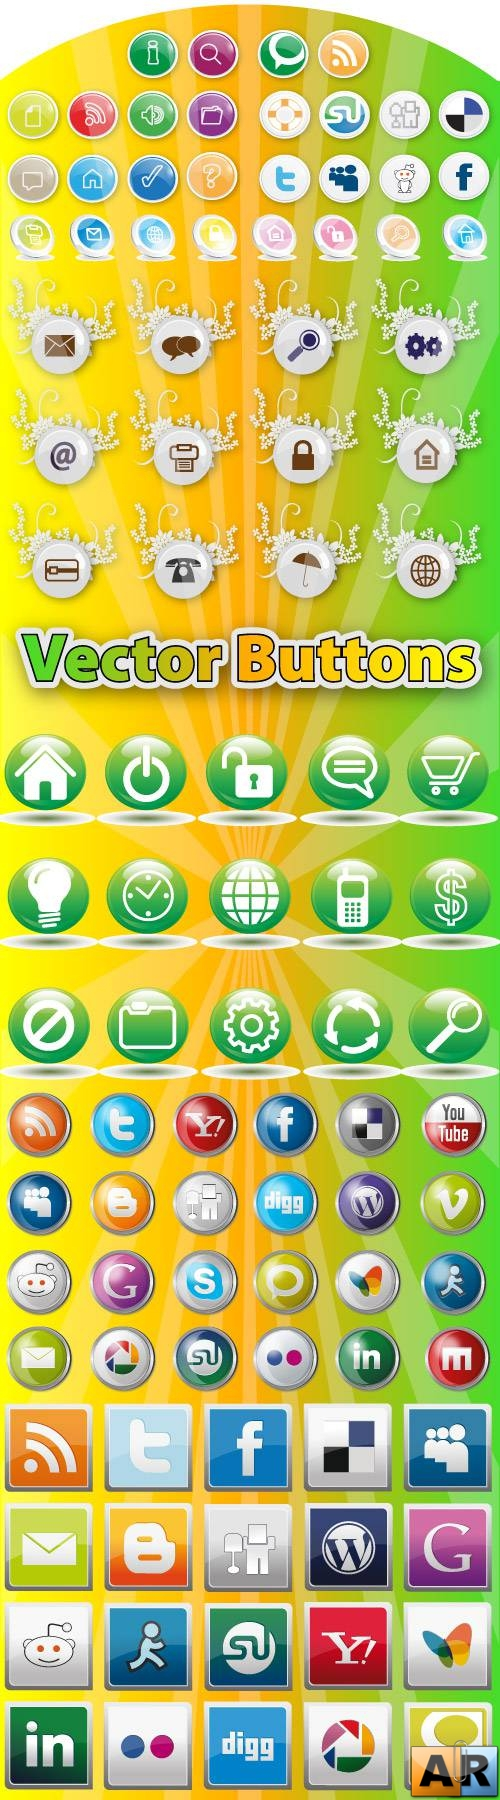 Stock Vector Buttons